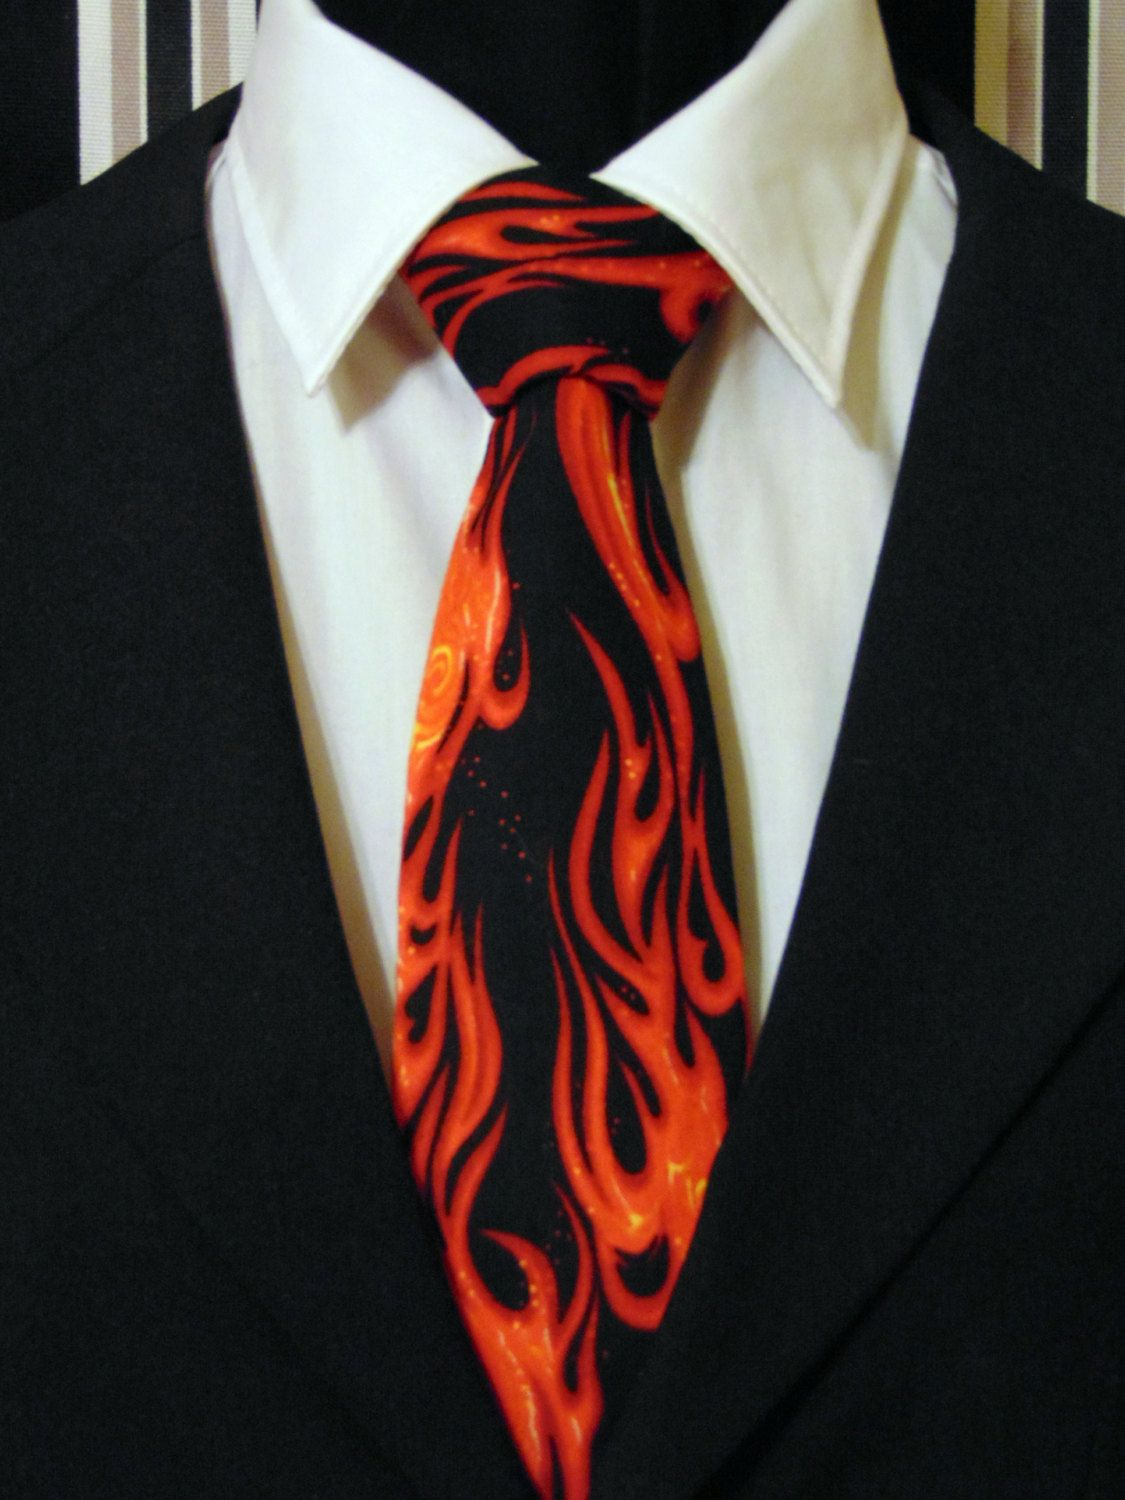 Flame Necktie, Flame Tie, Fire Necktie, Fire Tie, Mens Necktie, Mens Tie, Black Necktie, Black Tie, Red Necktie, Red Tie, Cotton Necktie by EdsNeckties on Etsy